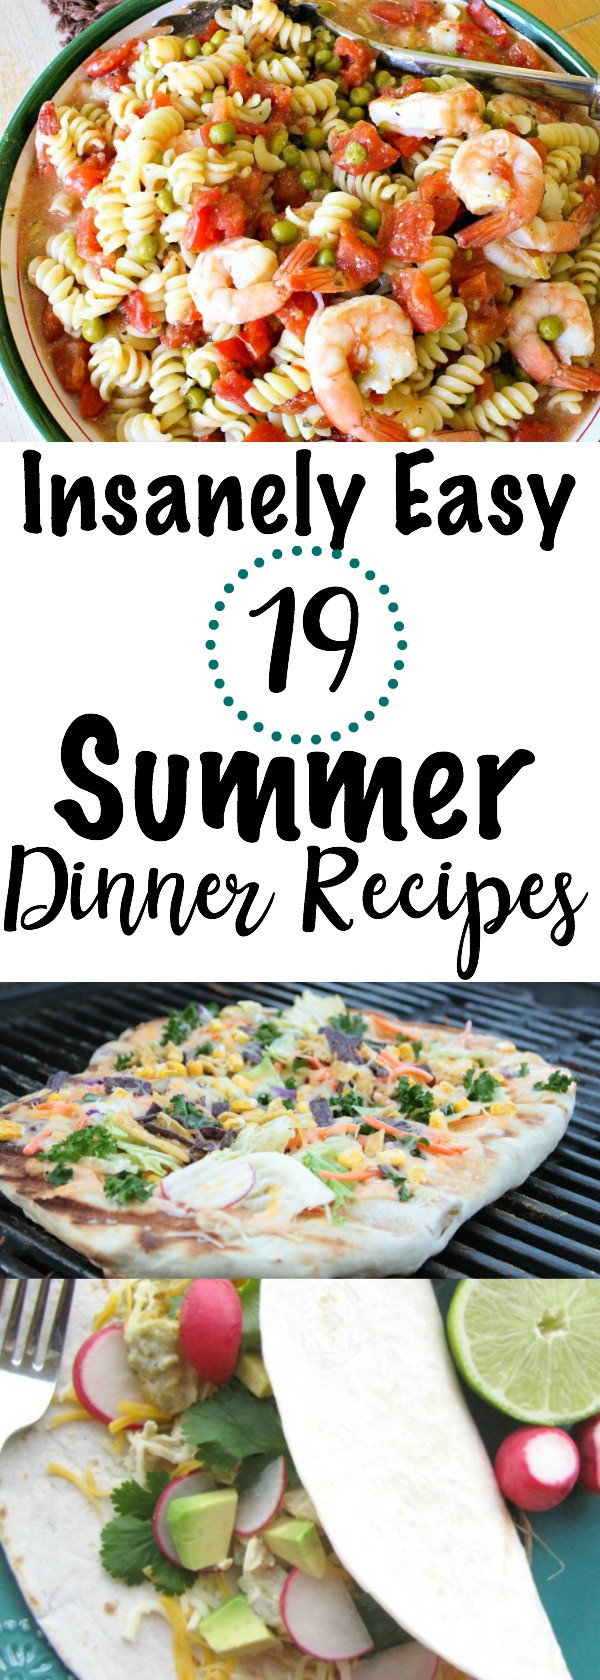 Simple Summer Dinners Recipes  19 Insanely Easy Summer Dinner Recipes